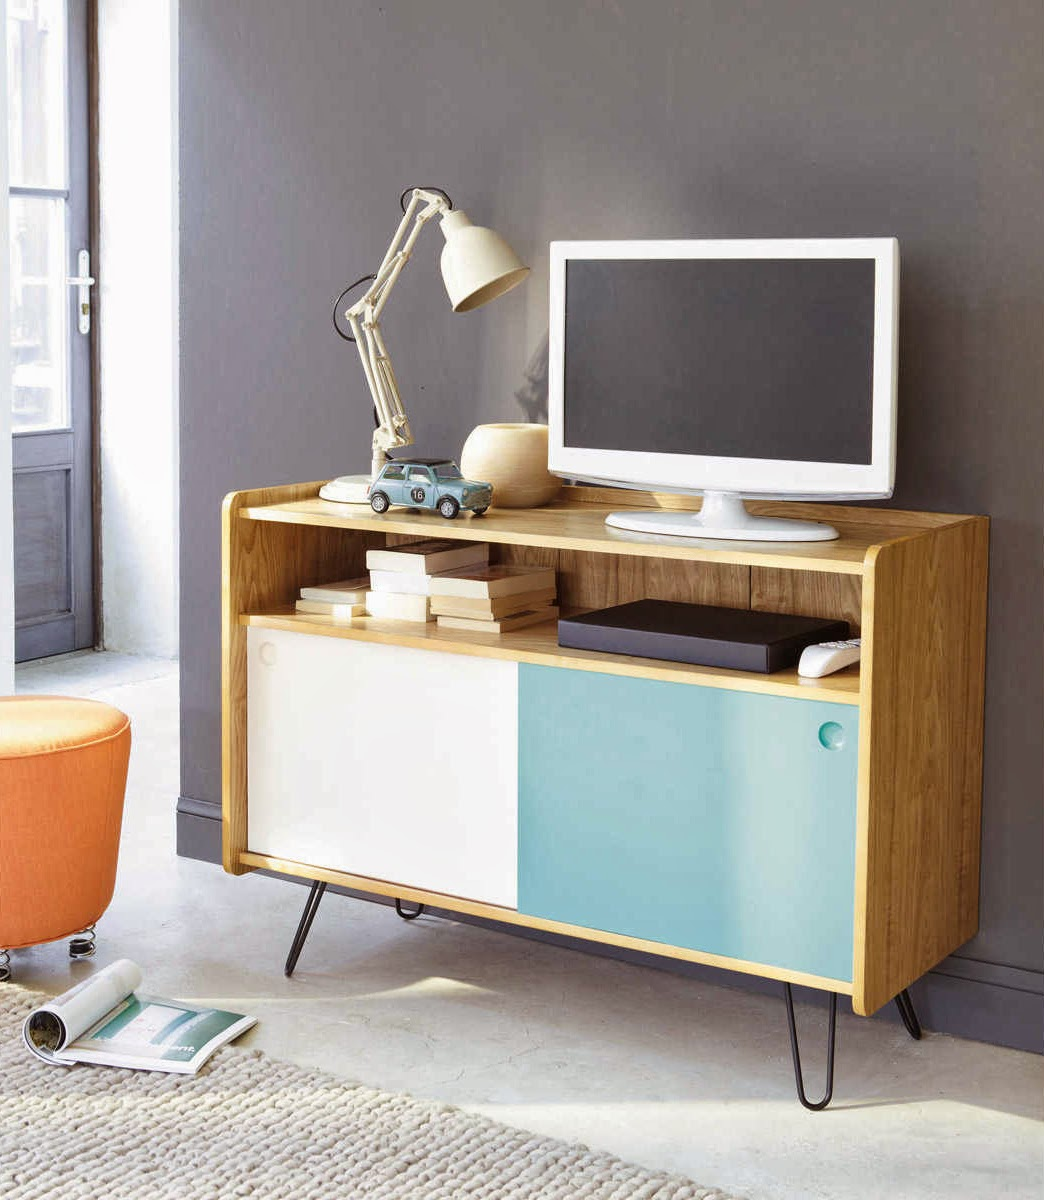 Seaseight design blog mad about nuova collezione maisons du monde - Mobile musical maison du monde ...